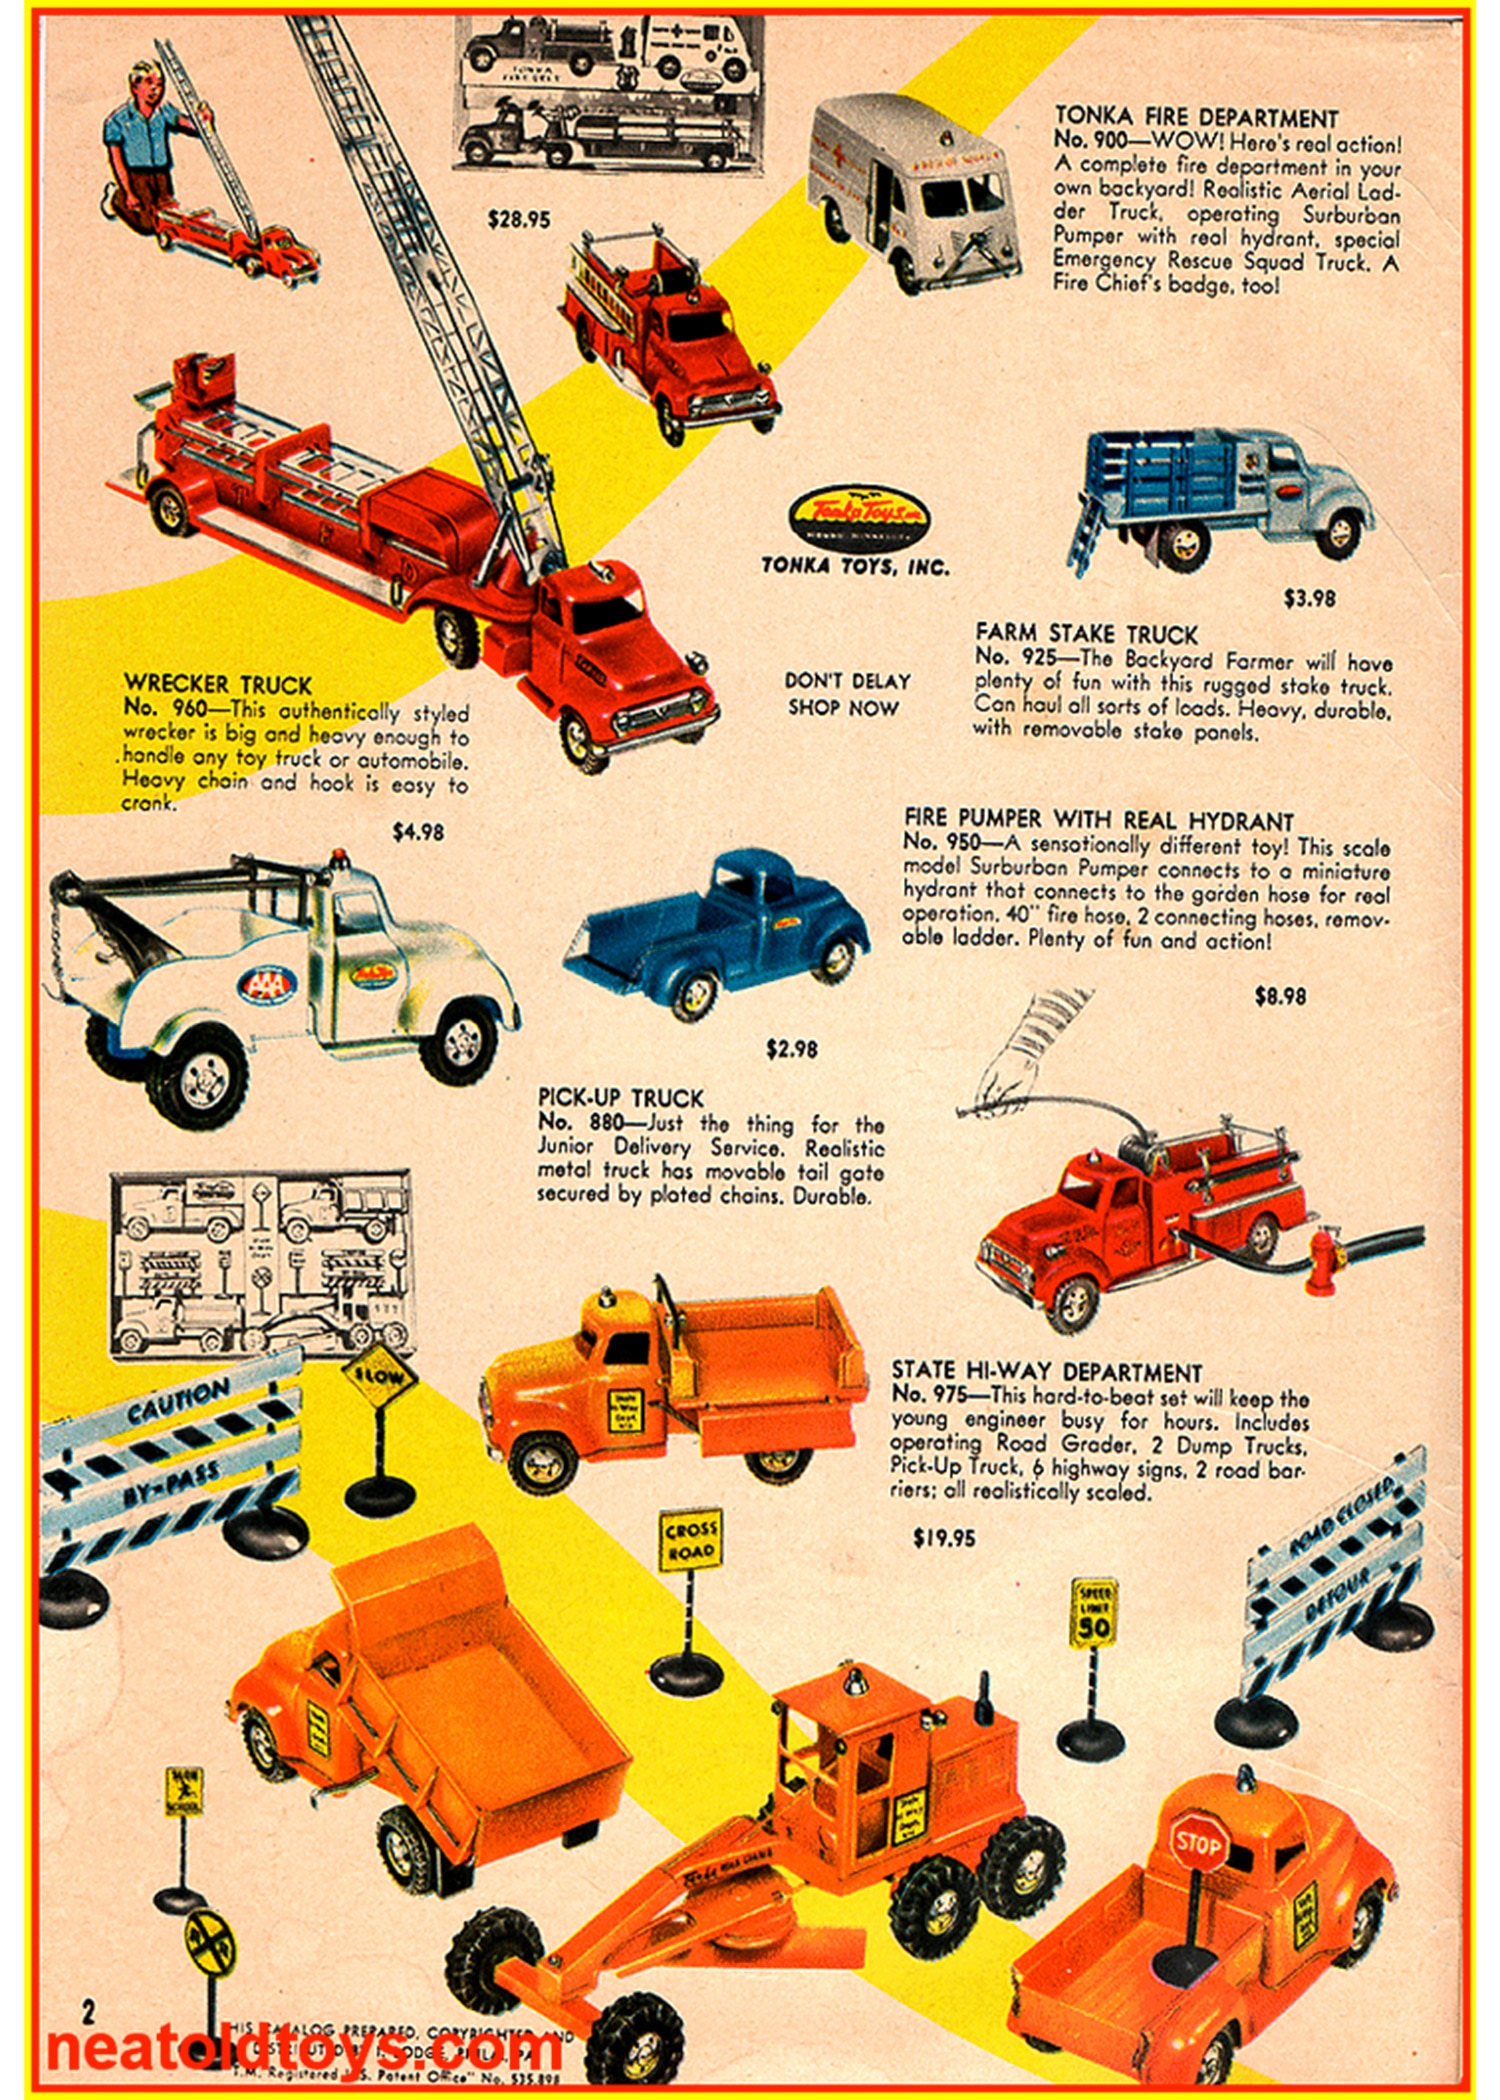 008 Ford F 750 Tonka Poster 1956